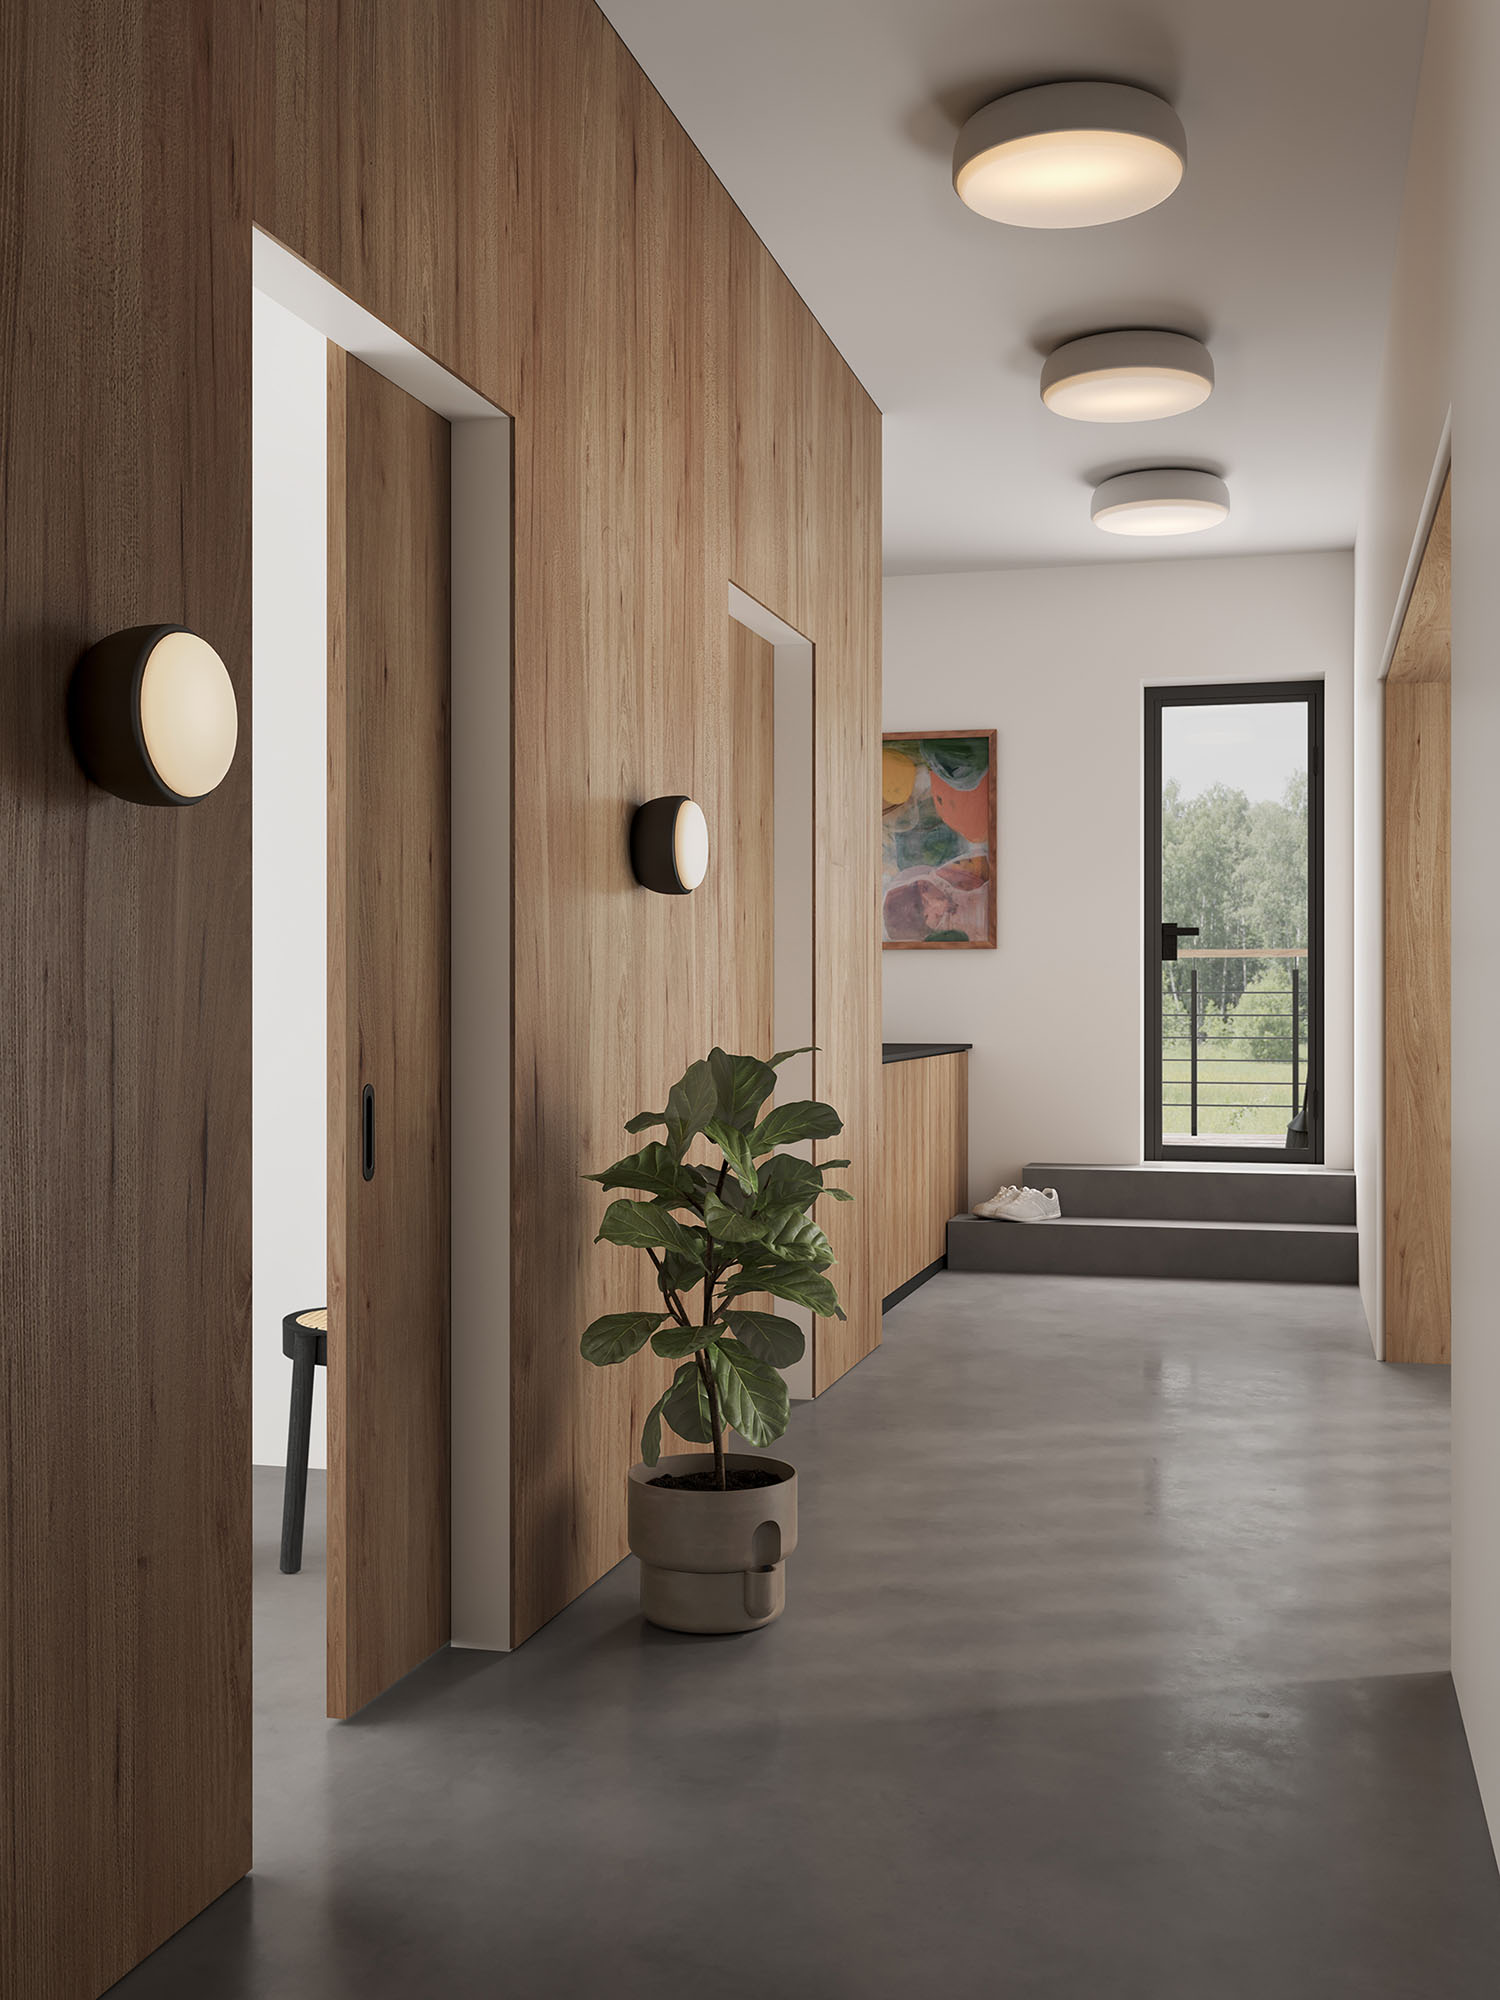 Over_Me_lamps_20_50_hallway_Northern_Low-res